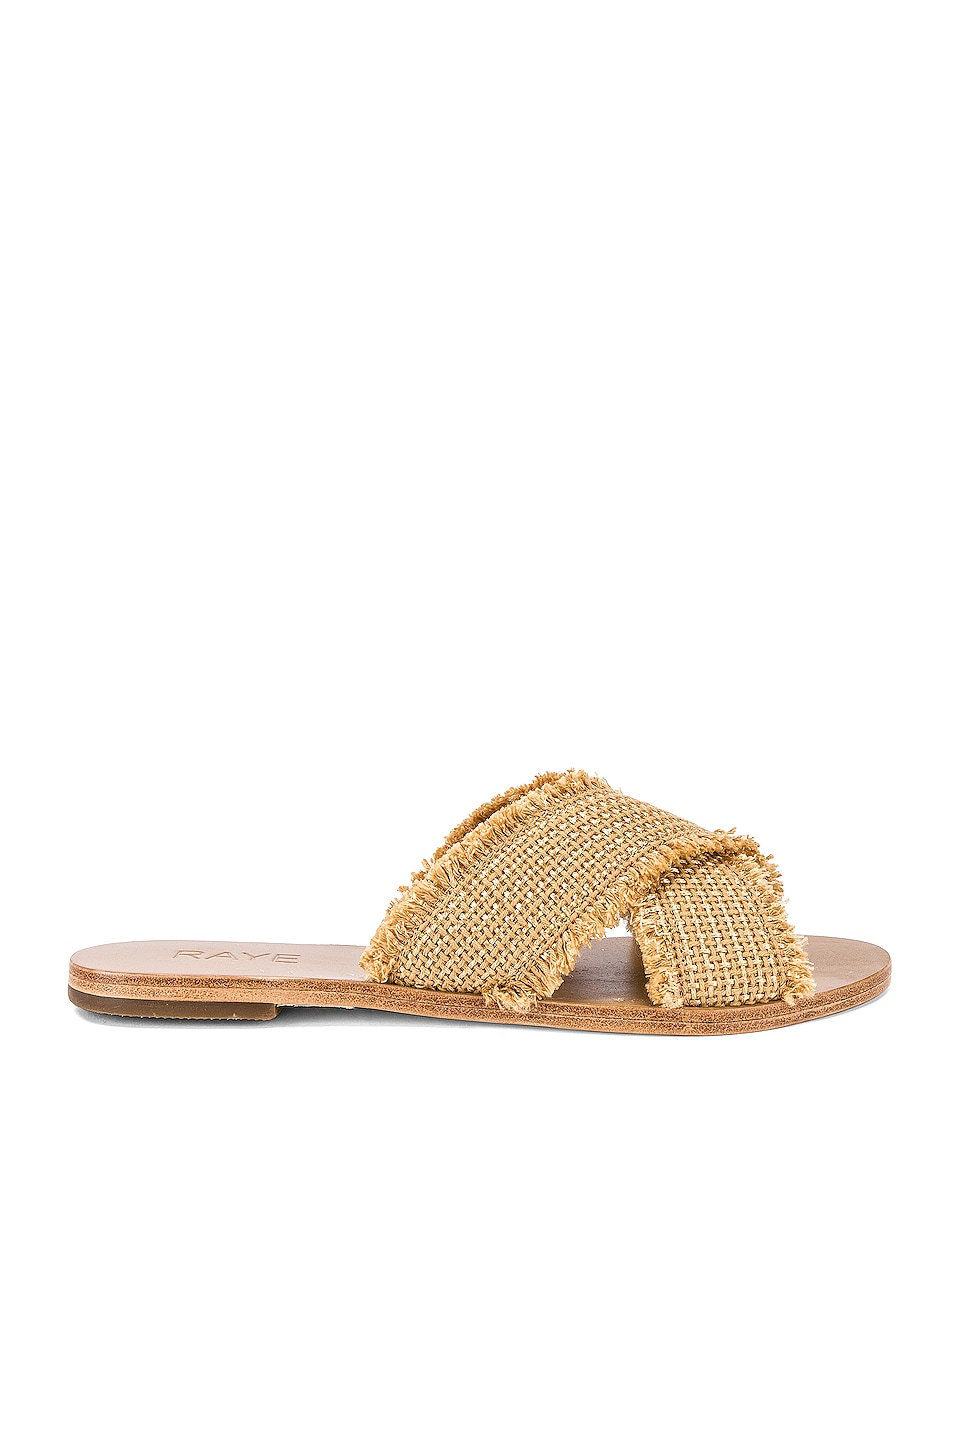 RAYE Couer Sandal in Natural